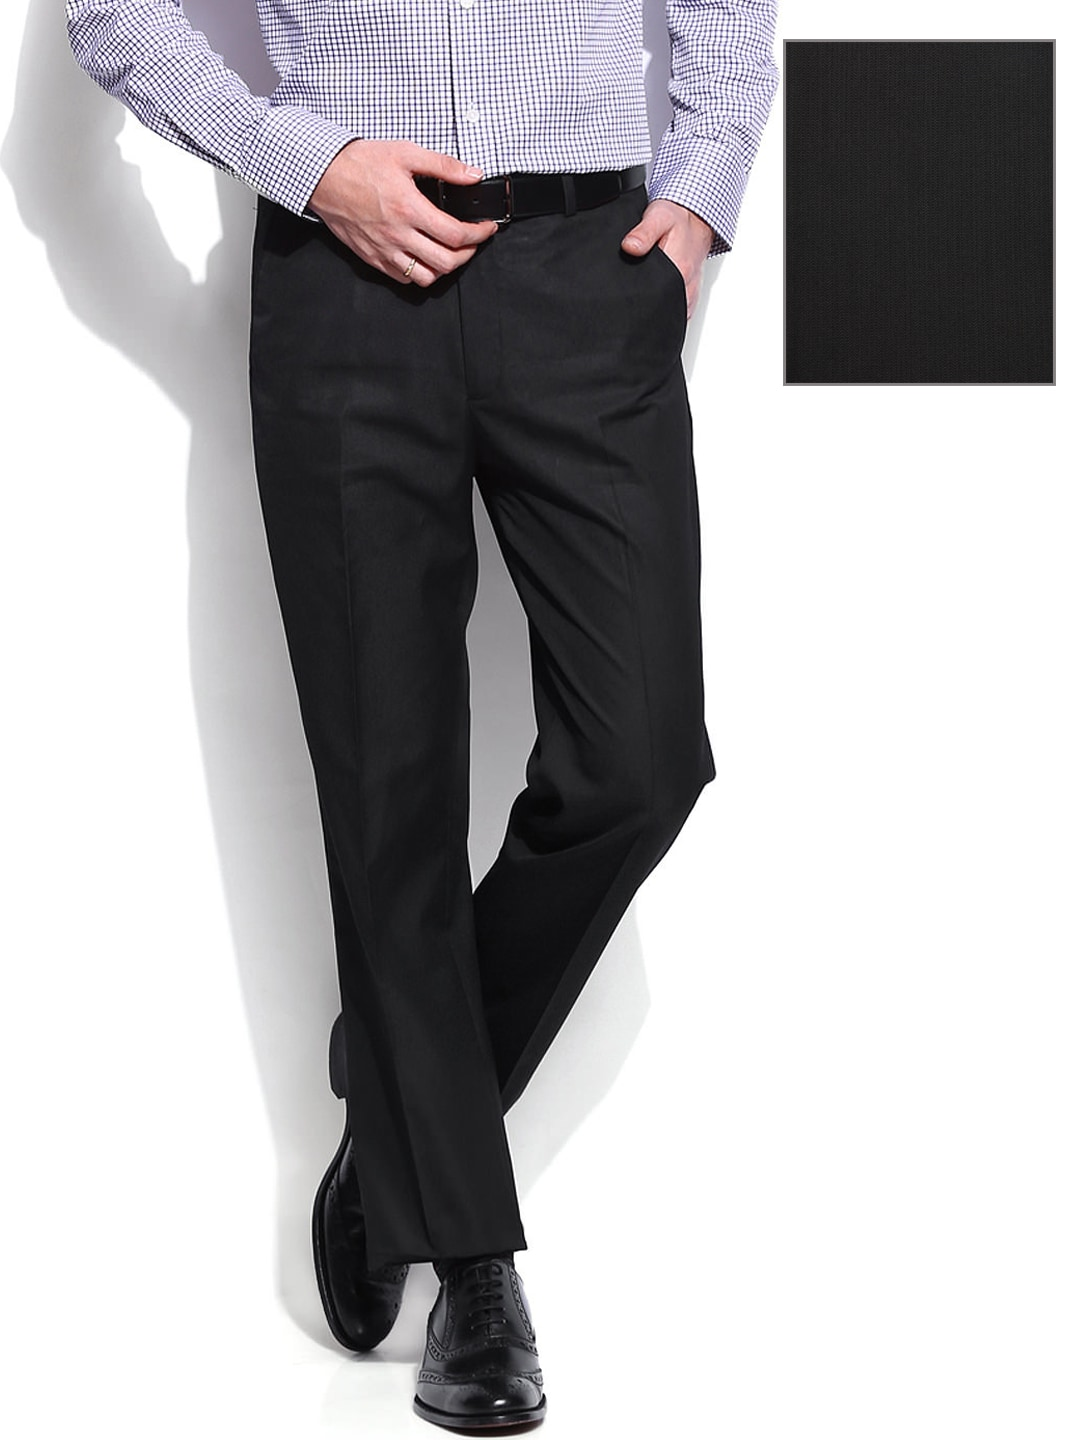 c77c7e349507 Buy INVICTUS Men Black Tailored Fit Formal Trousers 1283419 for ...